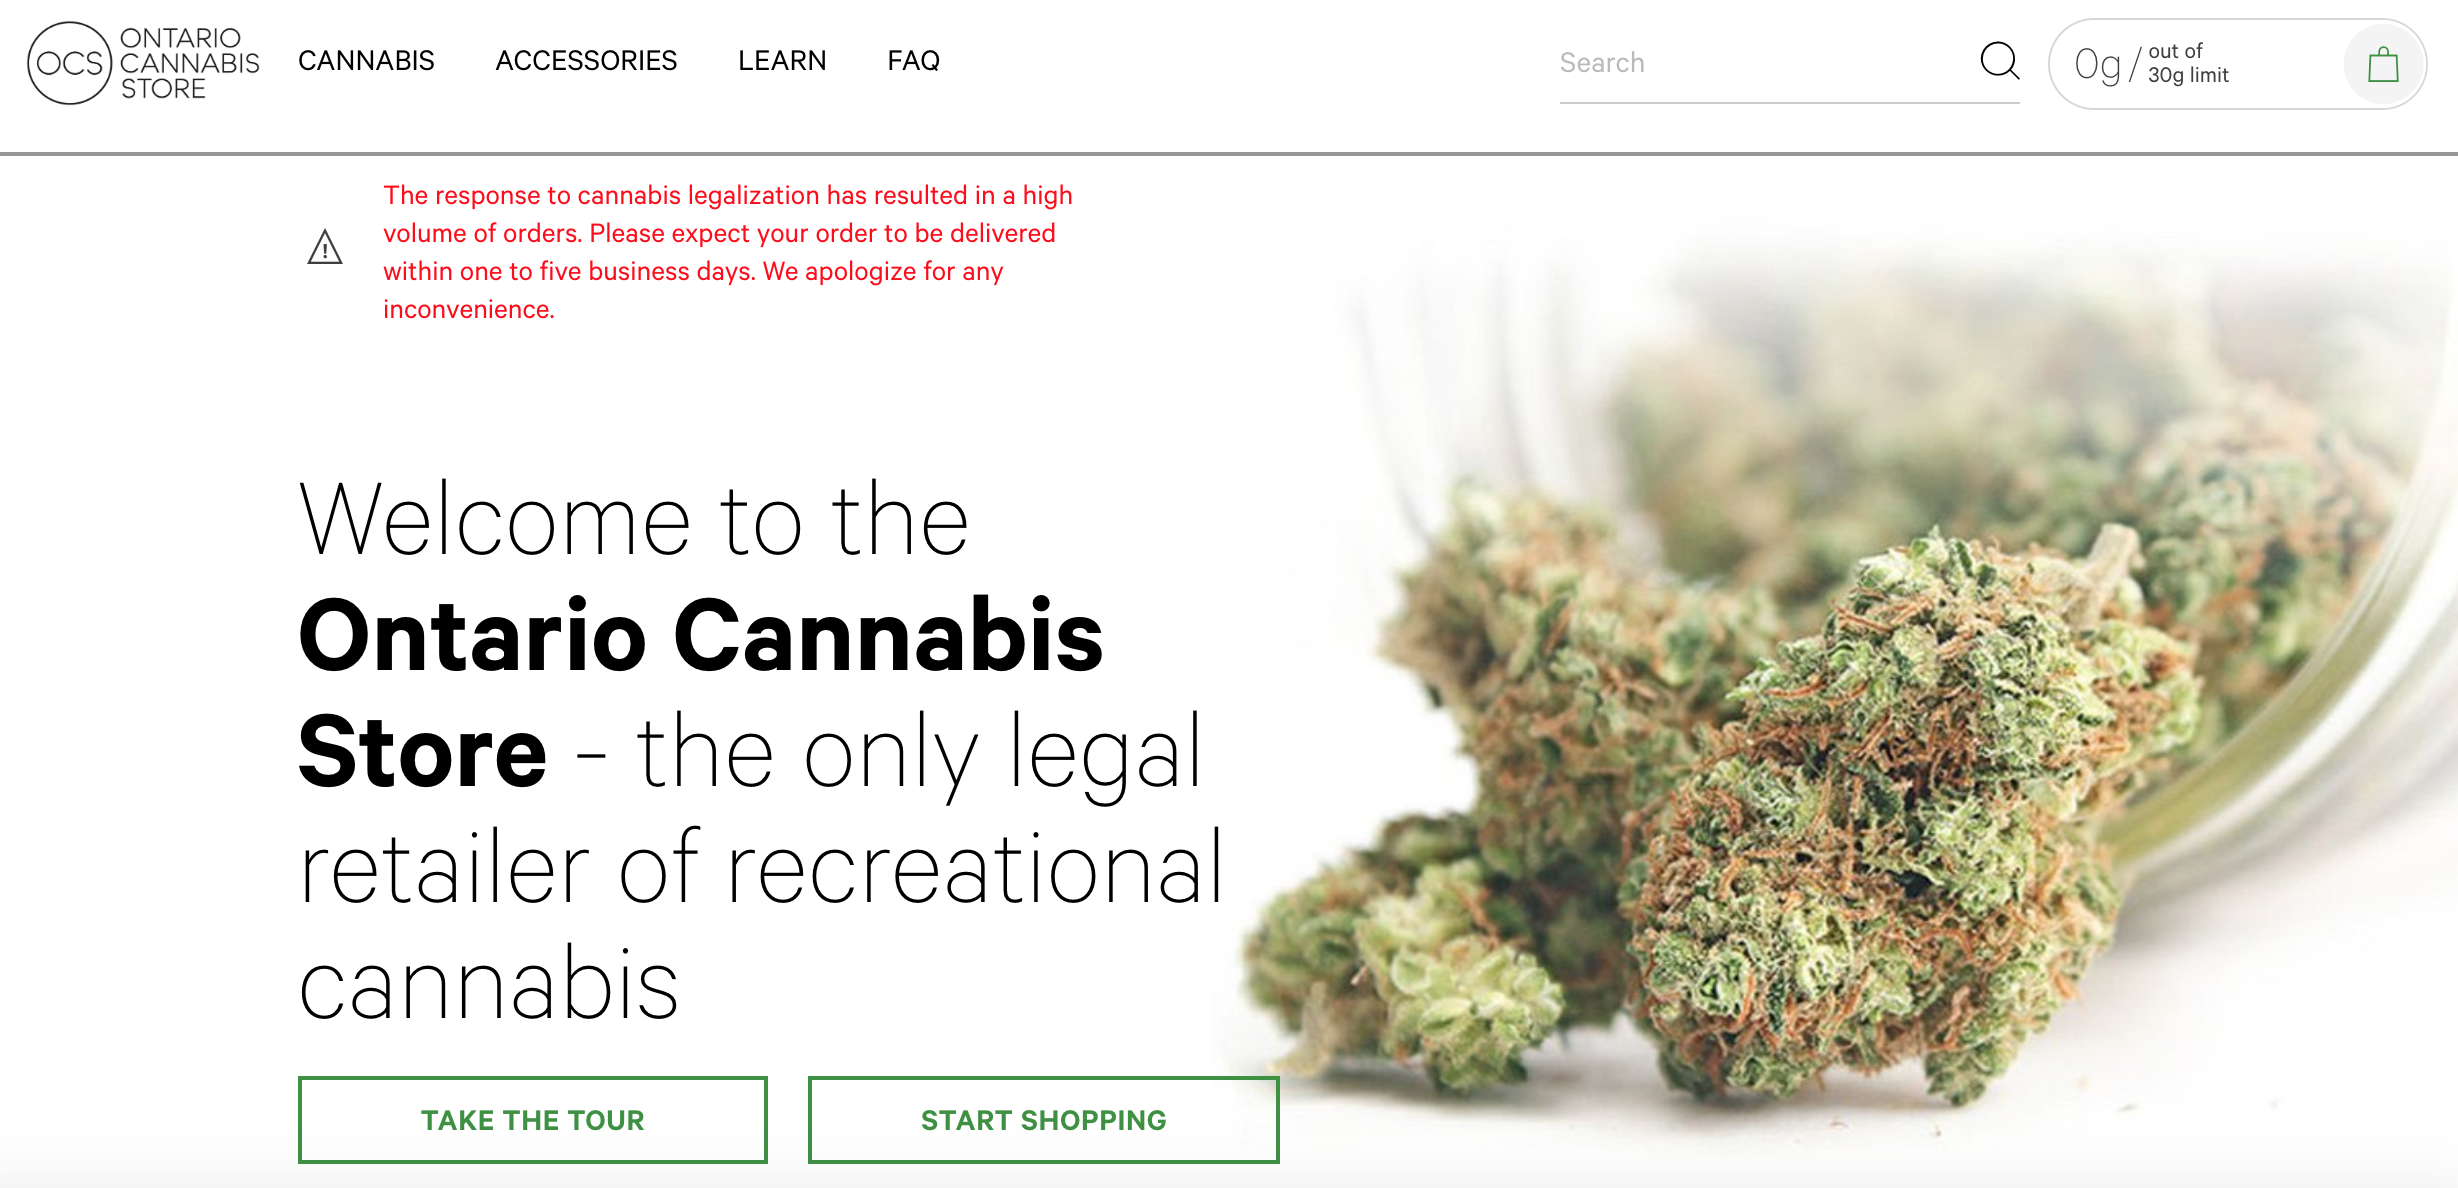 www.ocs.ca - The 'Ontario Cannabis Store' online e-commerce portal already experience high volume of orders after just launching at midnight on October 17, 2018.